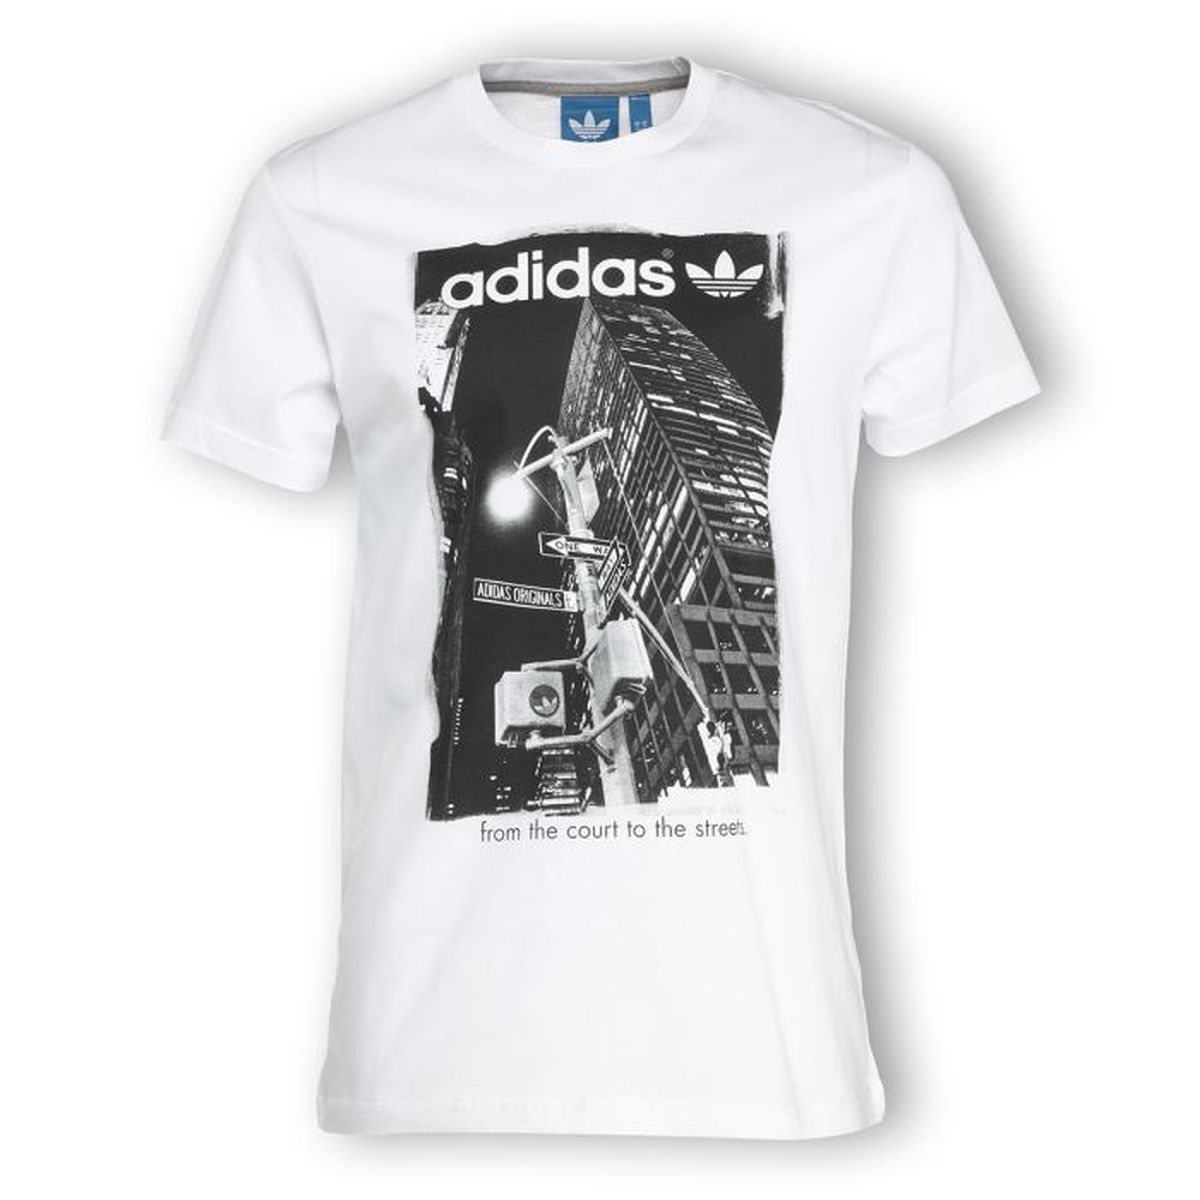 adidas homme t-shirt